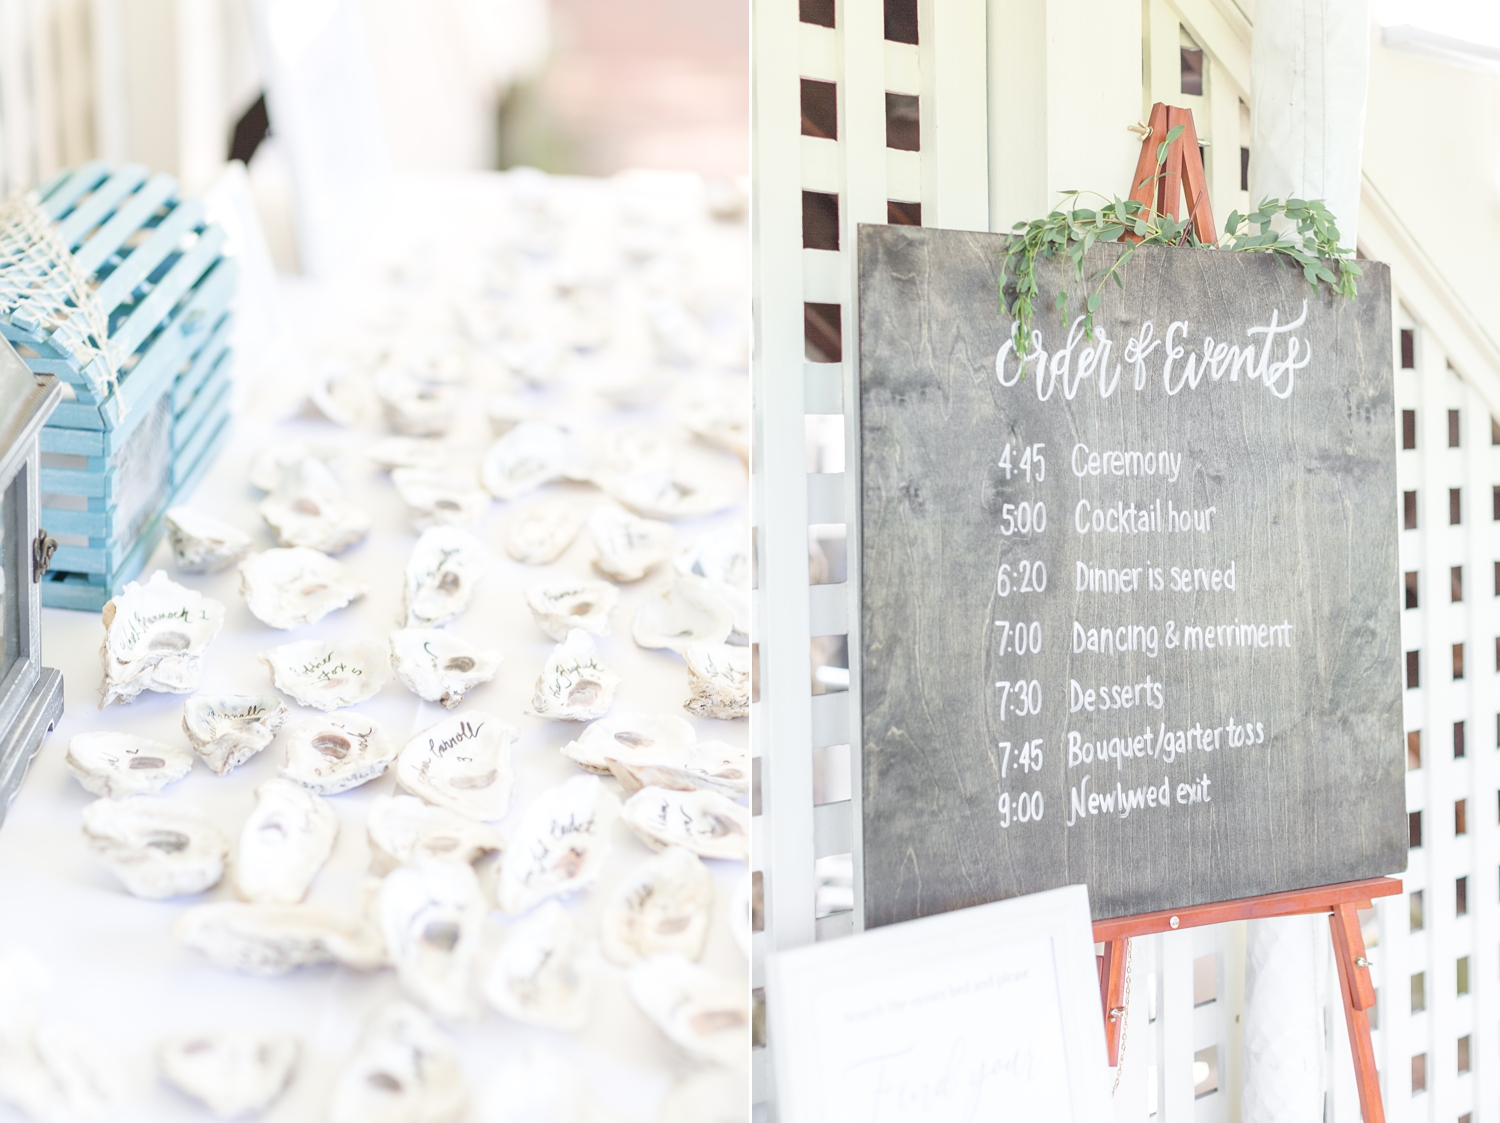 Love this idea with the oysters place cards! So creative.